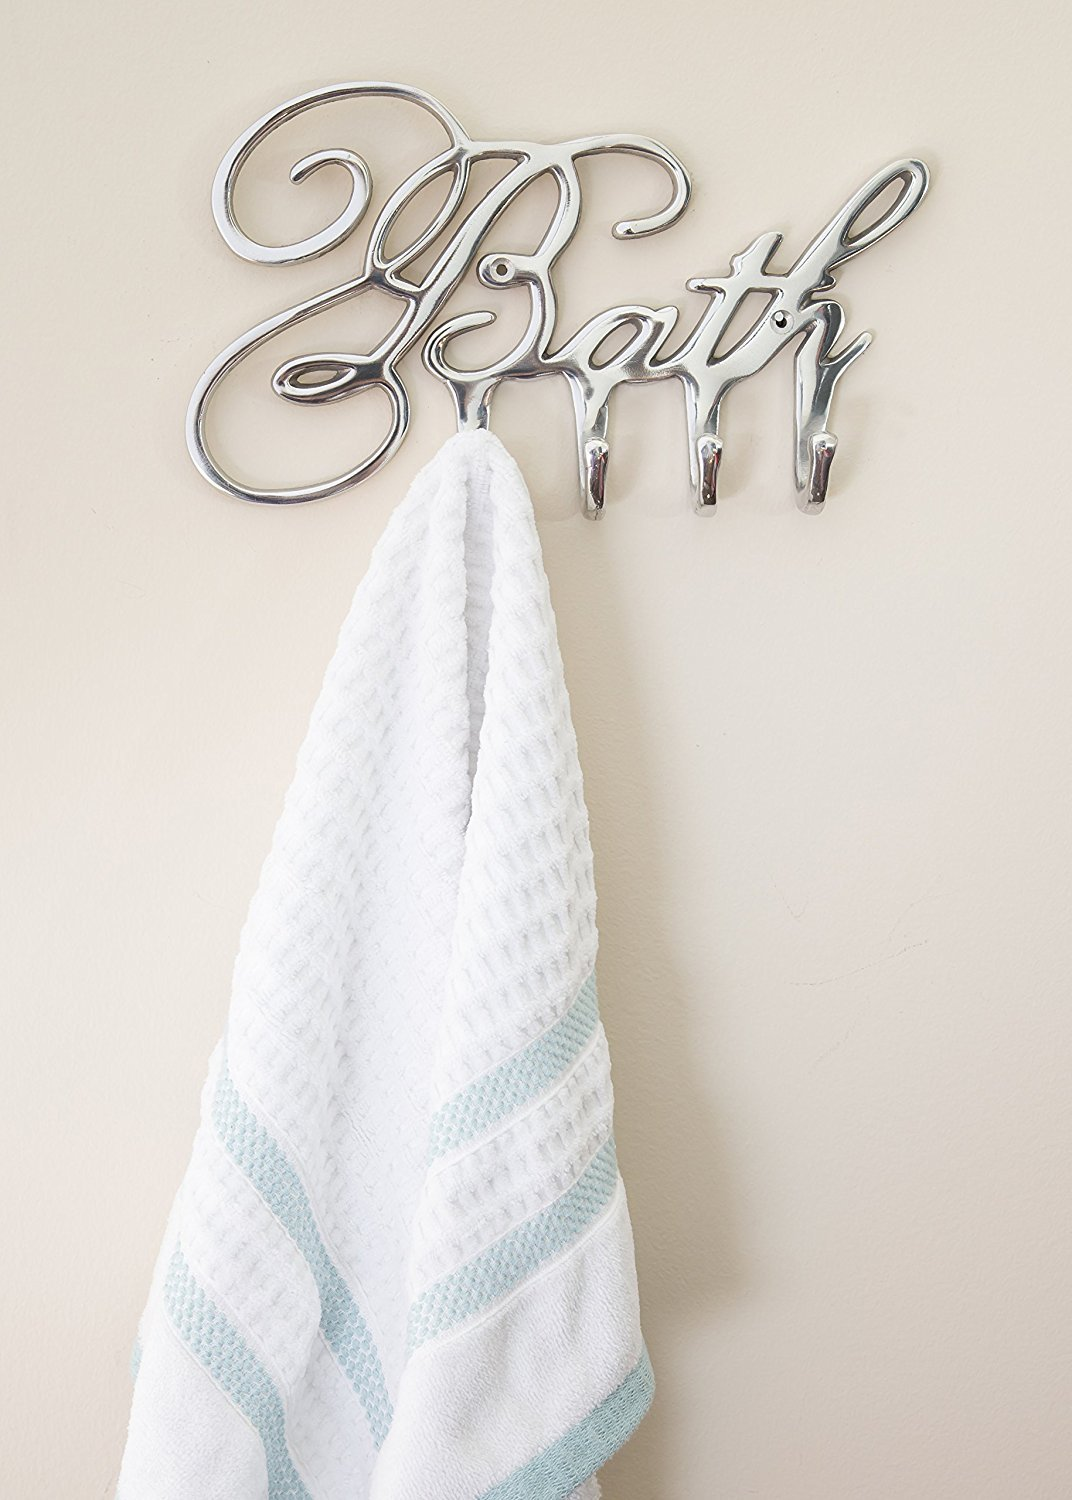 Decorative Bath Towel Hooks Bathroom Hanger By Comfify